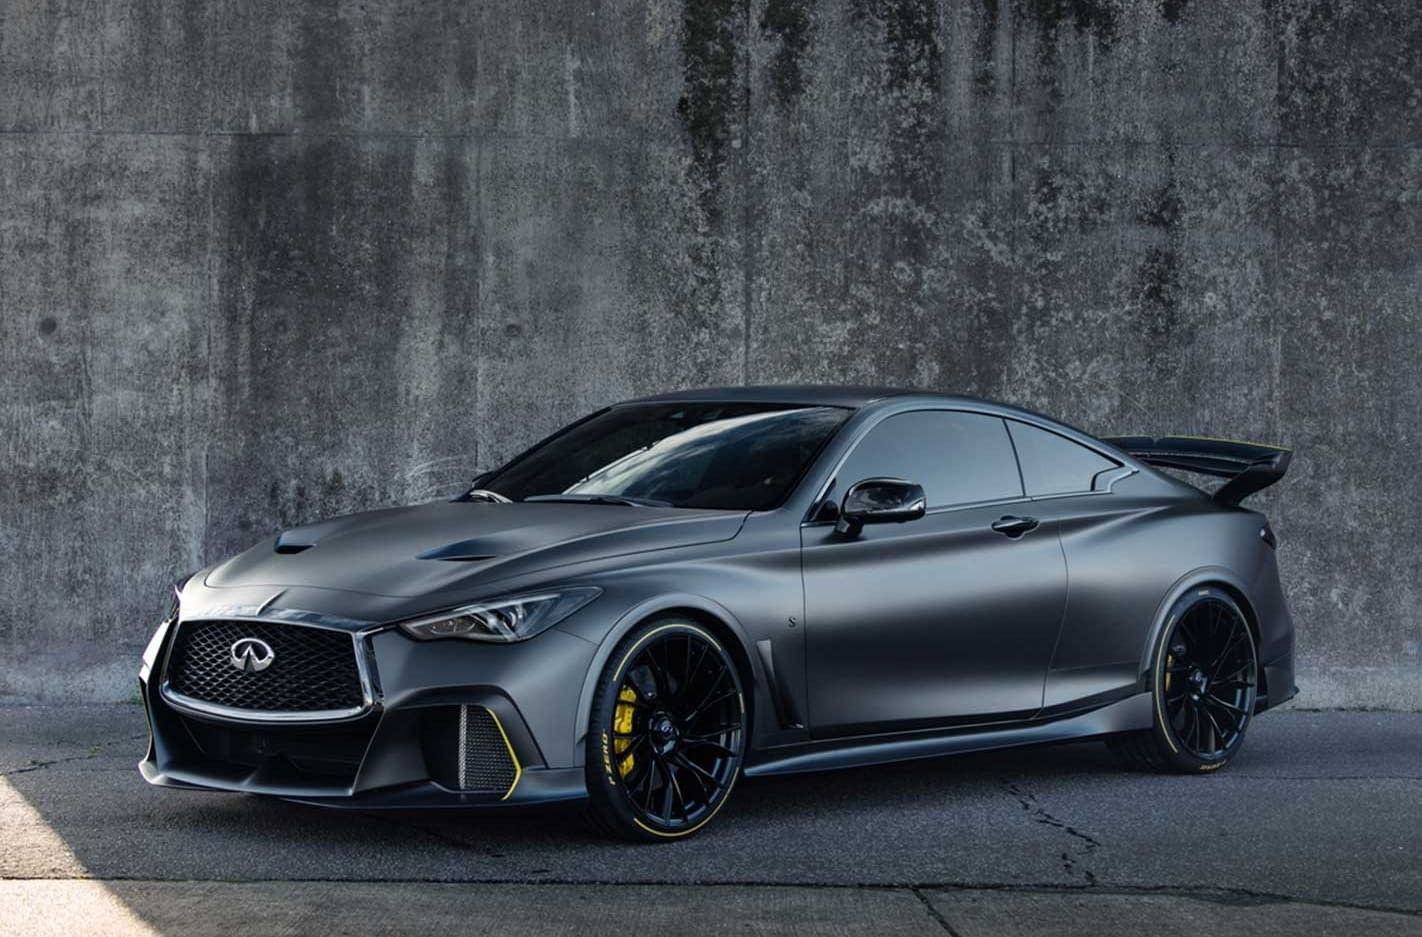 Infiniti Q60 Red Sport engine 418kW KERS system